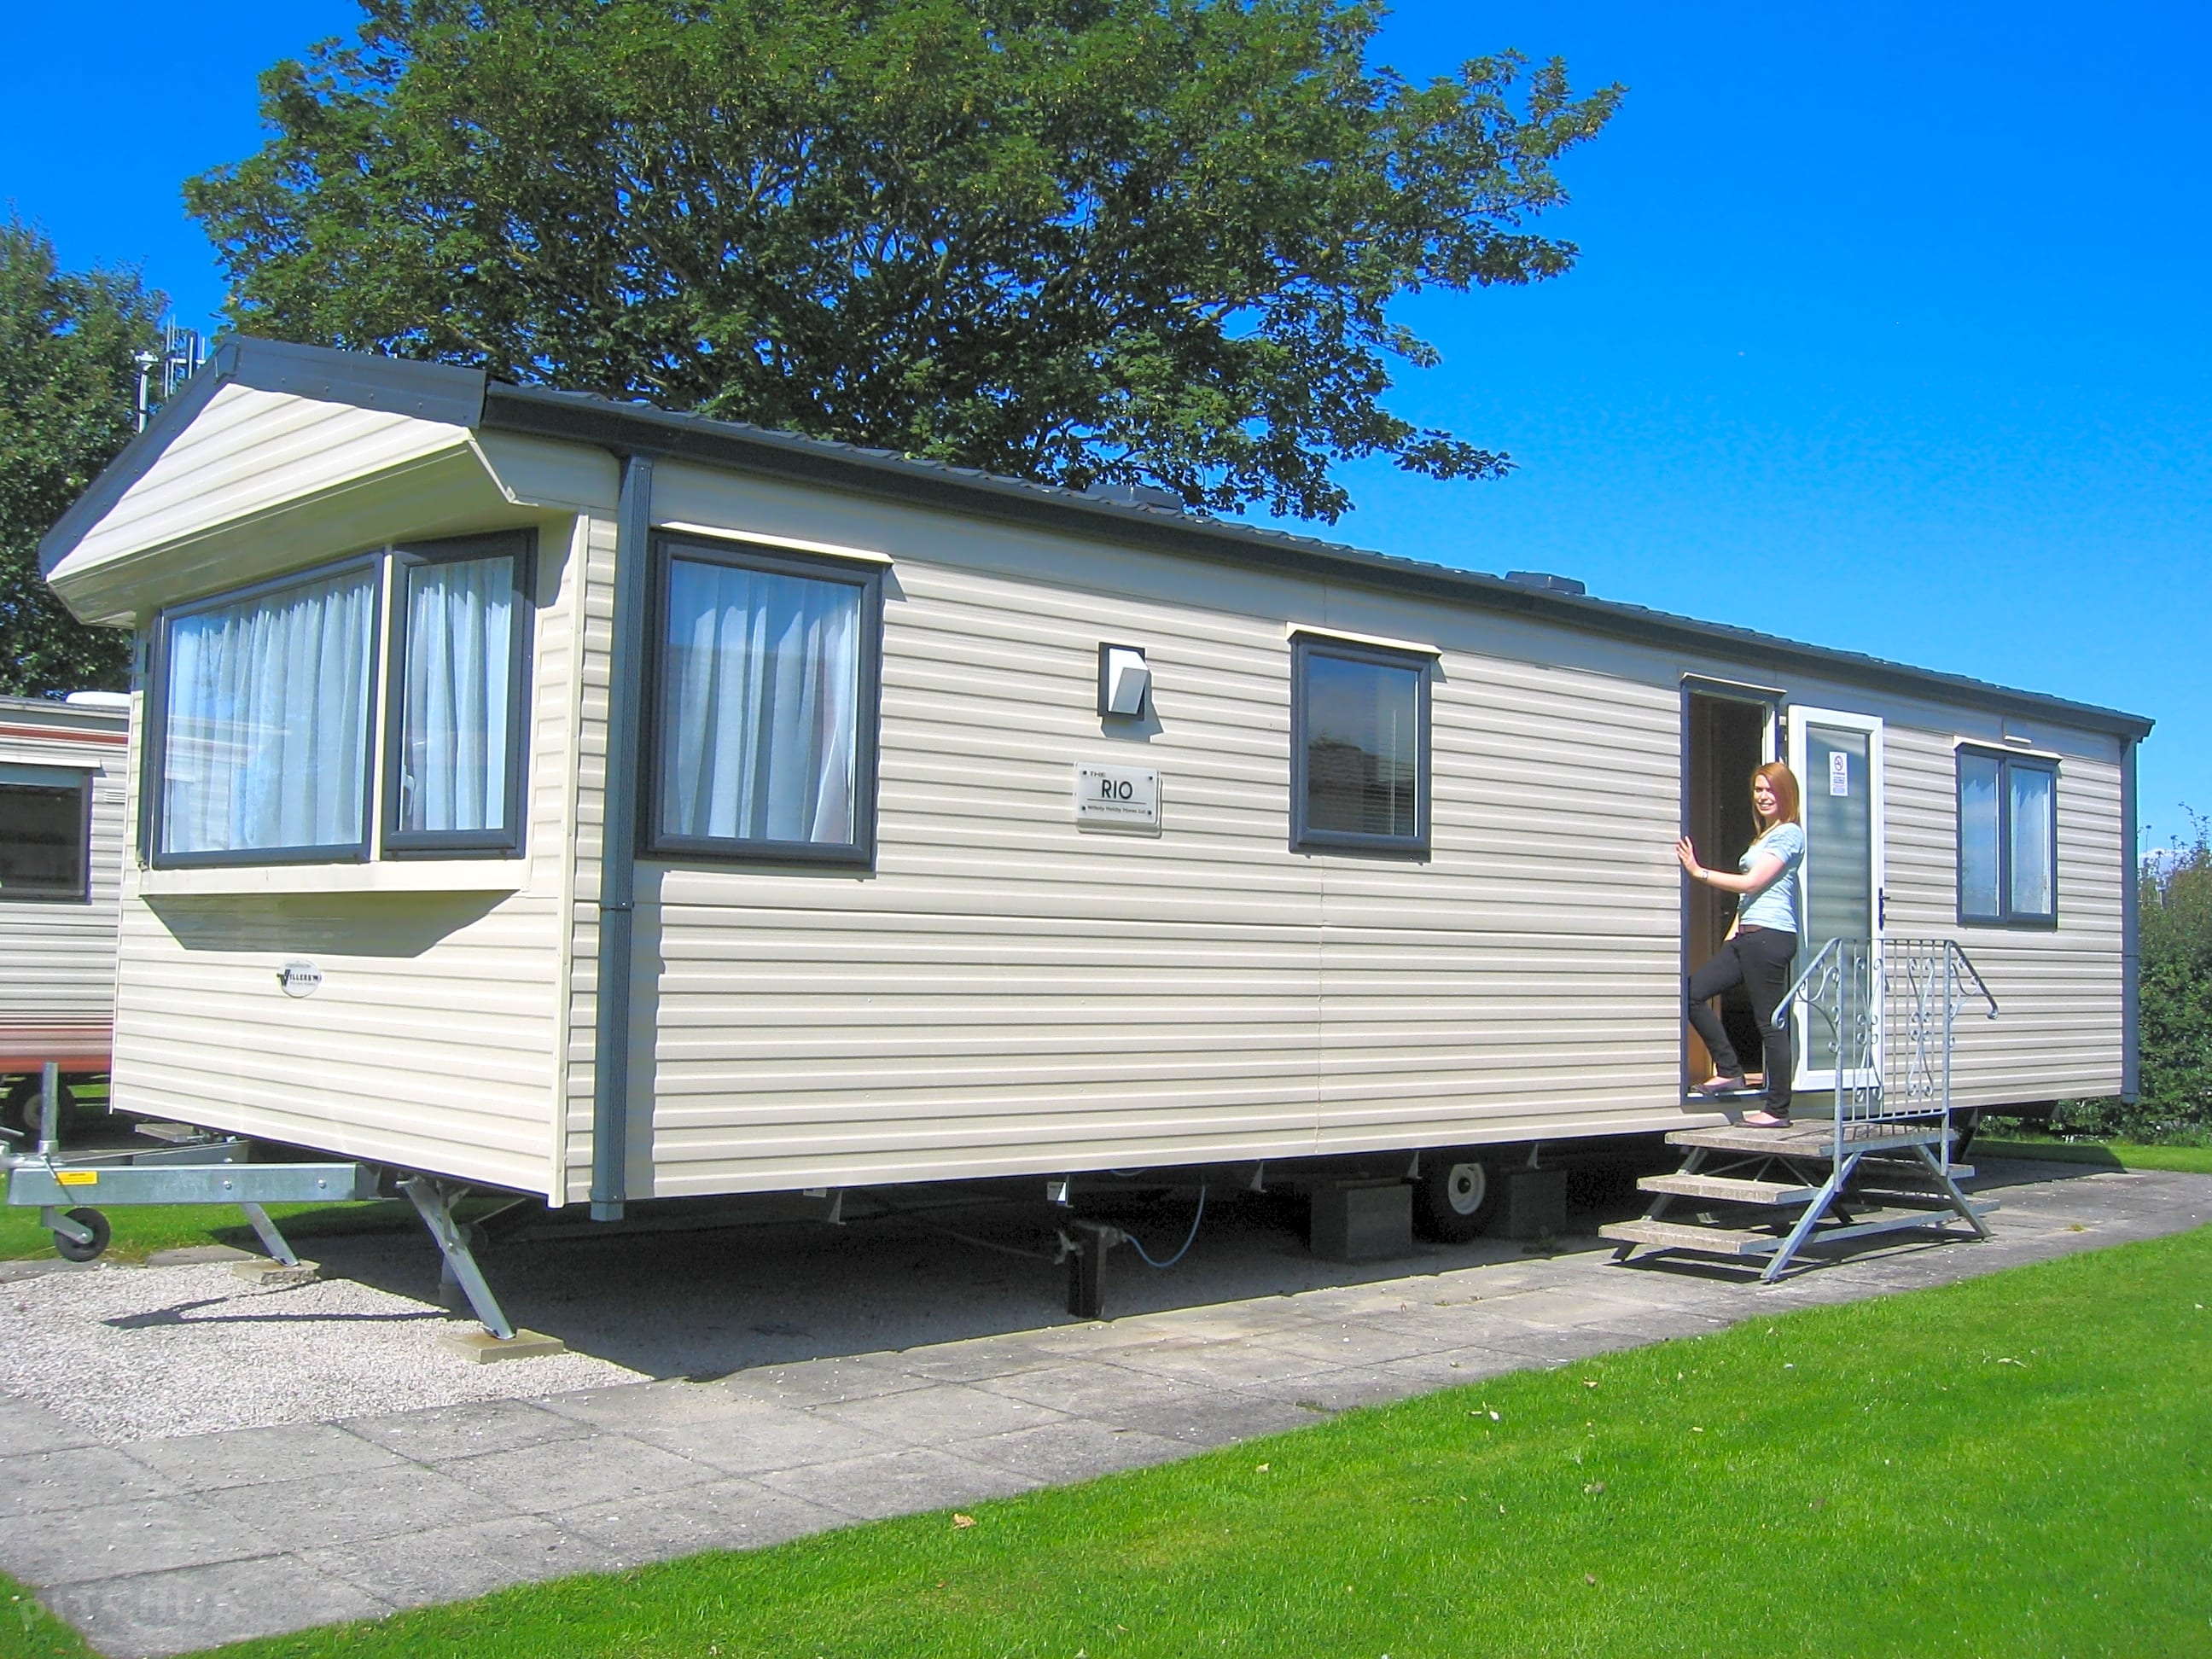 Kneps Farm Holiday Park, Thornton Cleveleys - Pitchup®